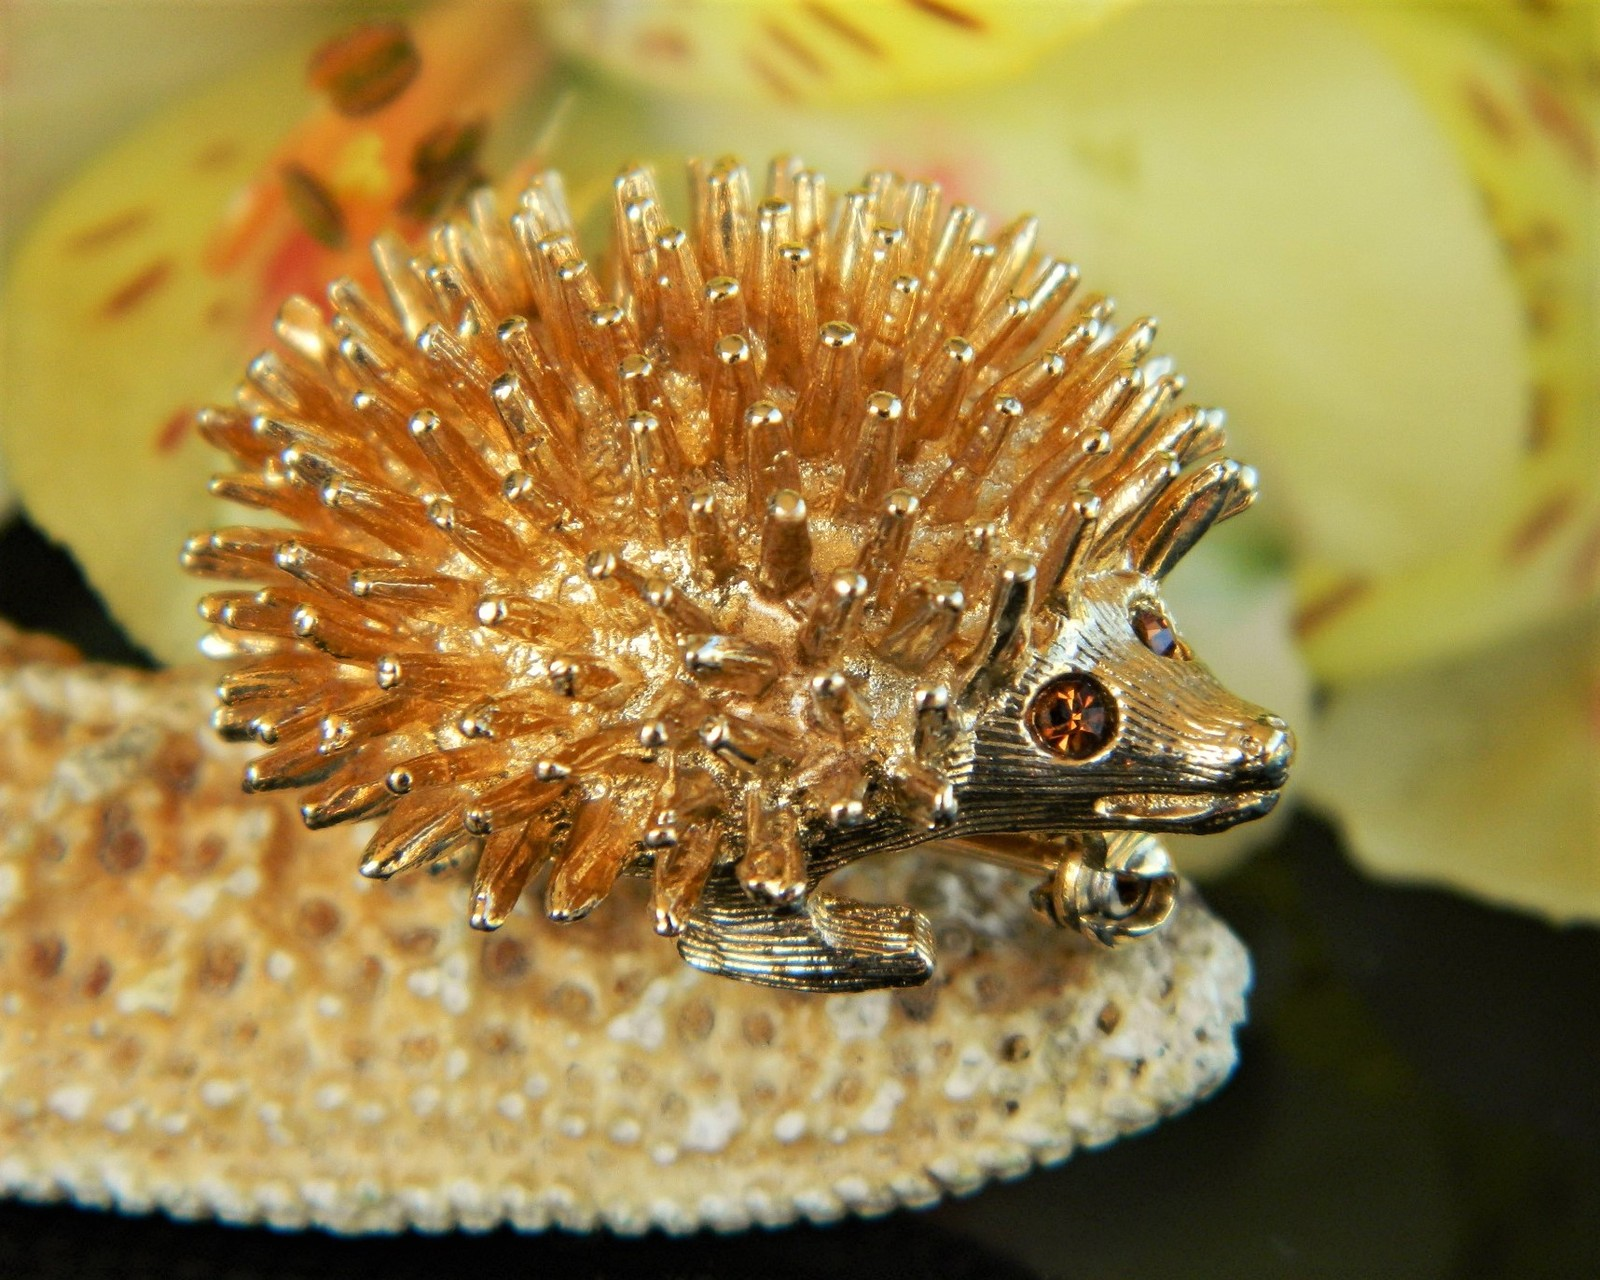 Vintage porcupine hedgehog sarah coventry spiked pin brooch amber eyes